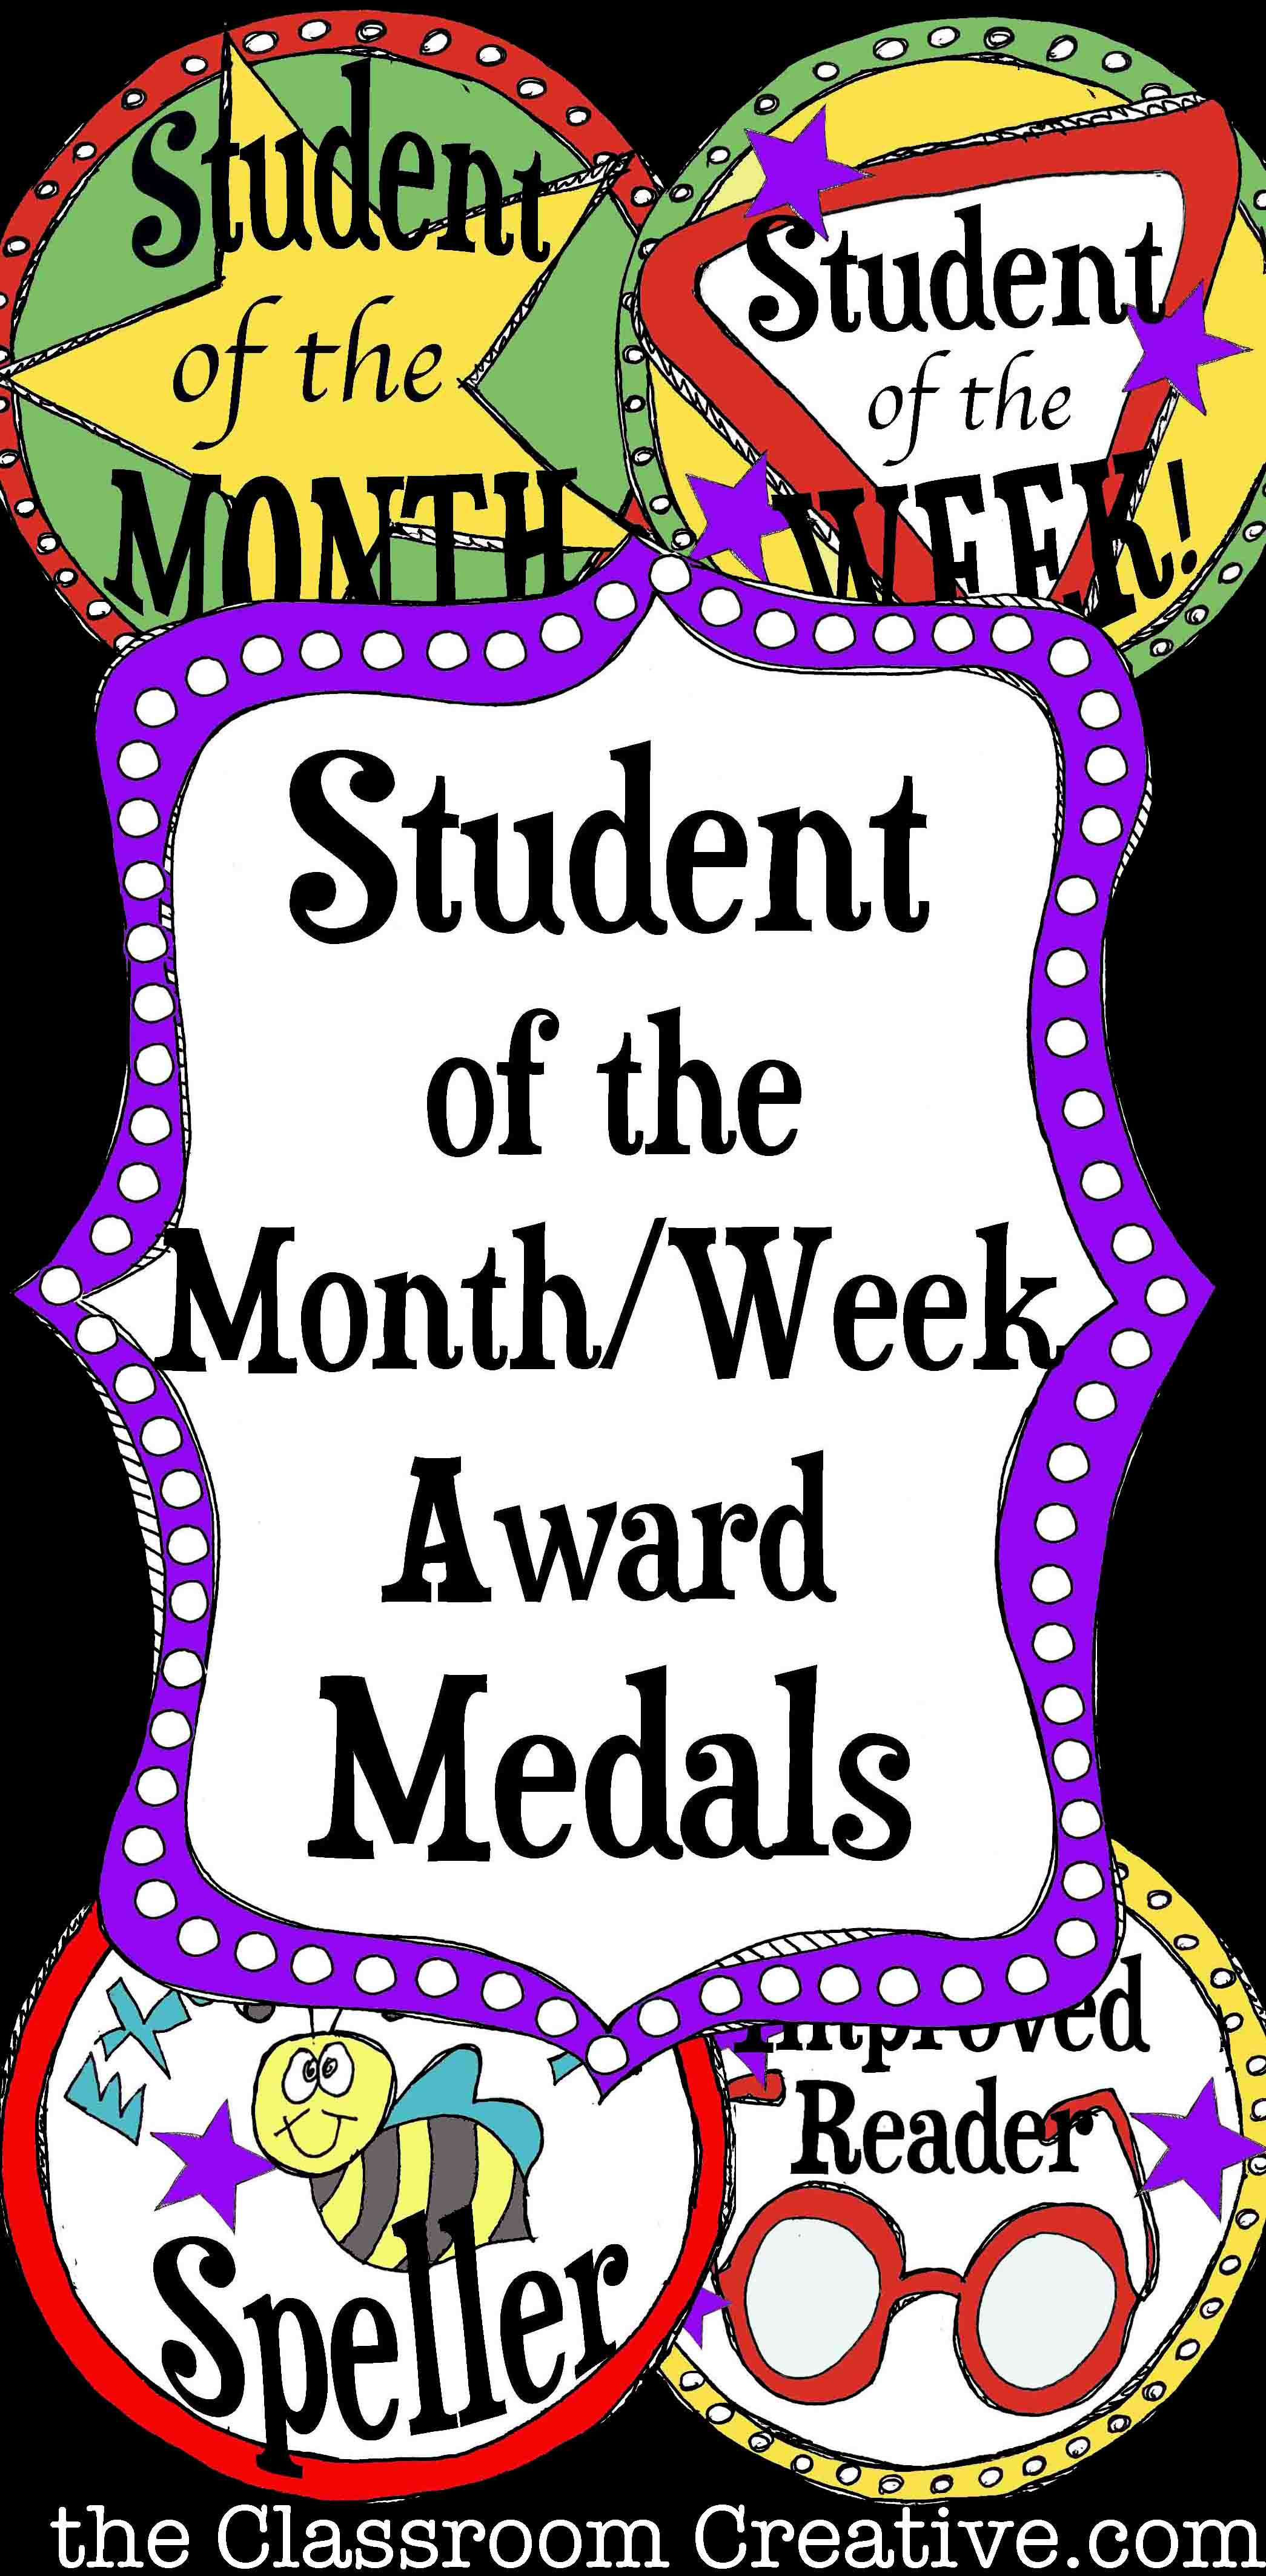 Student of the month clipart black and white stock Printable Student of the Month Award Medals black and white stock